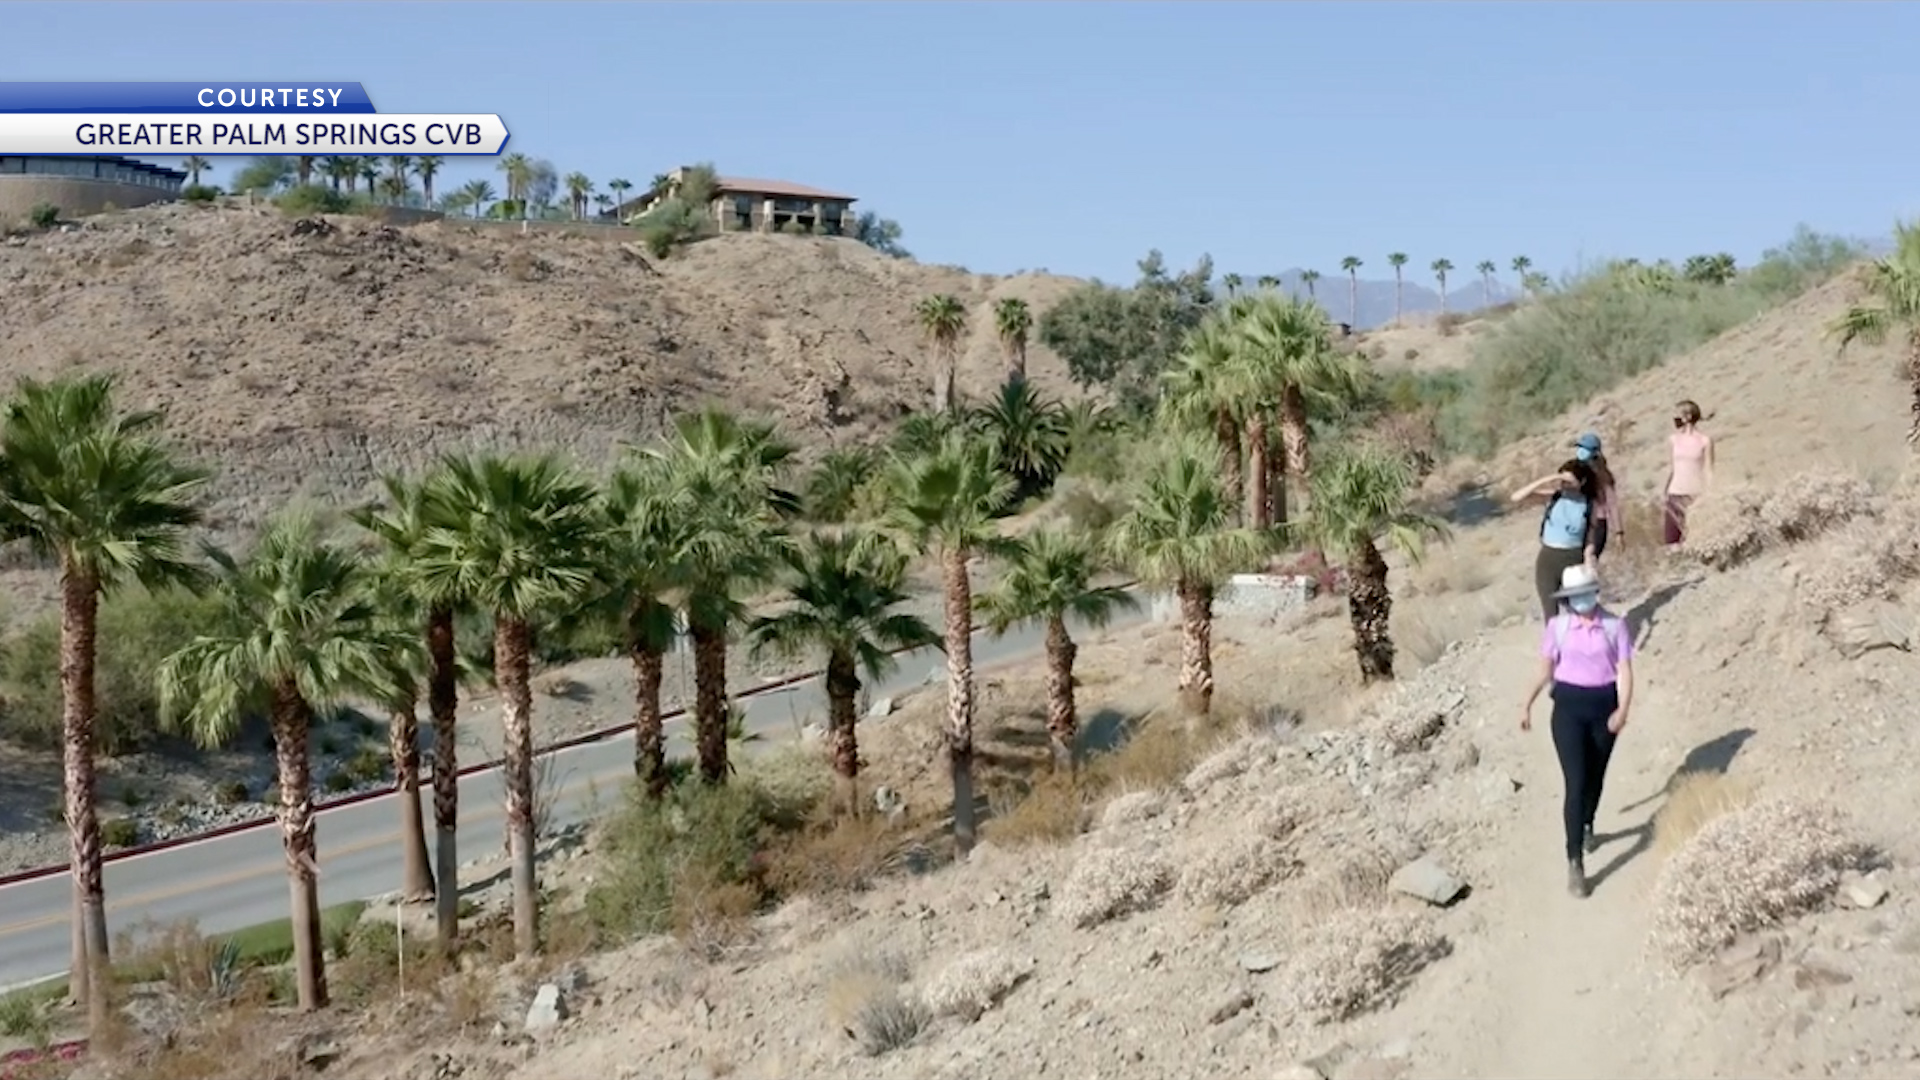 Palm Springs attracting tourists looking for destinations with strong COVID-19 protocols - KESQ